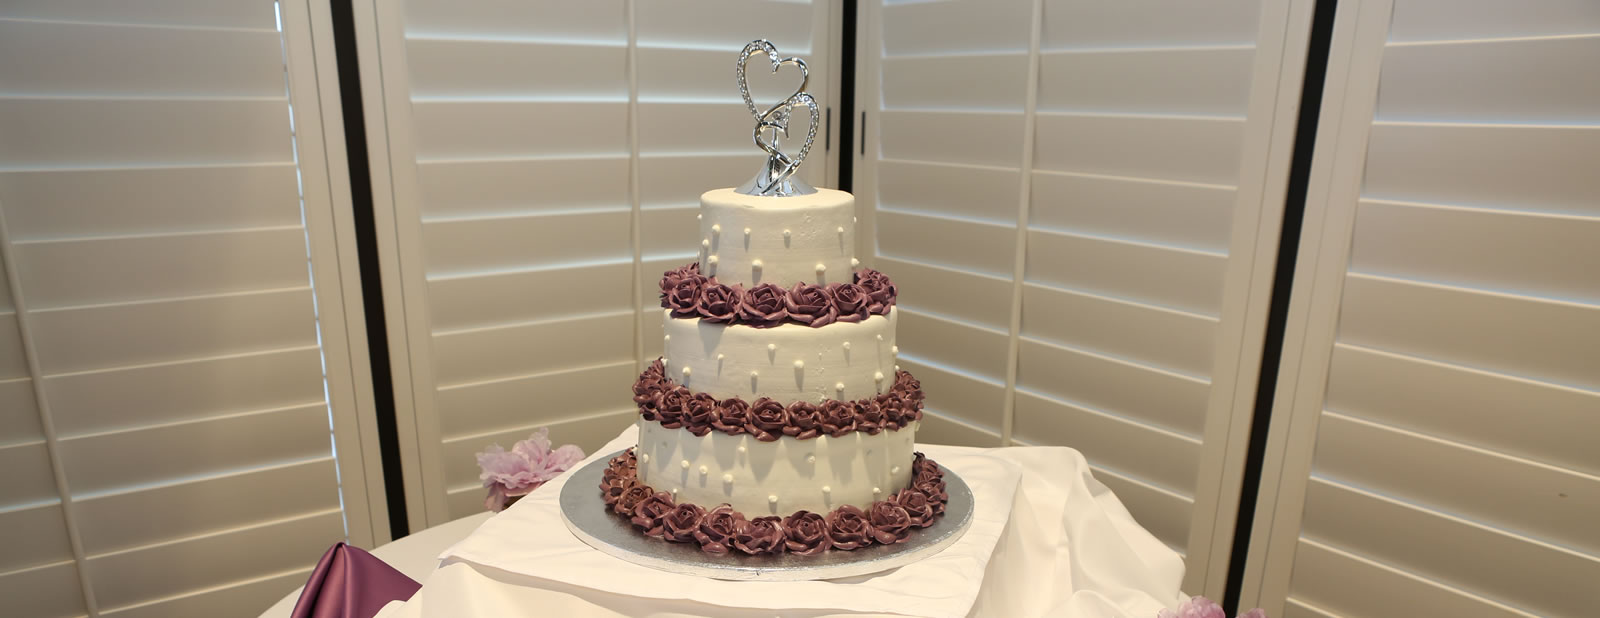 White 3 tier cake with purple roses and silver hearts on top